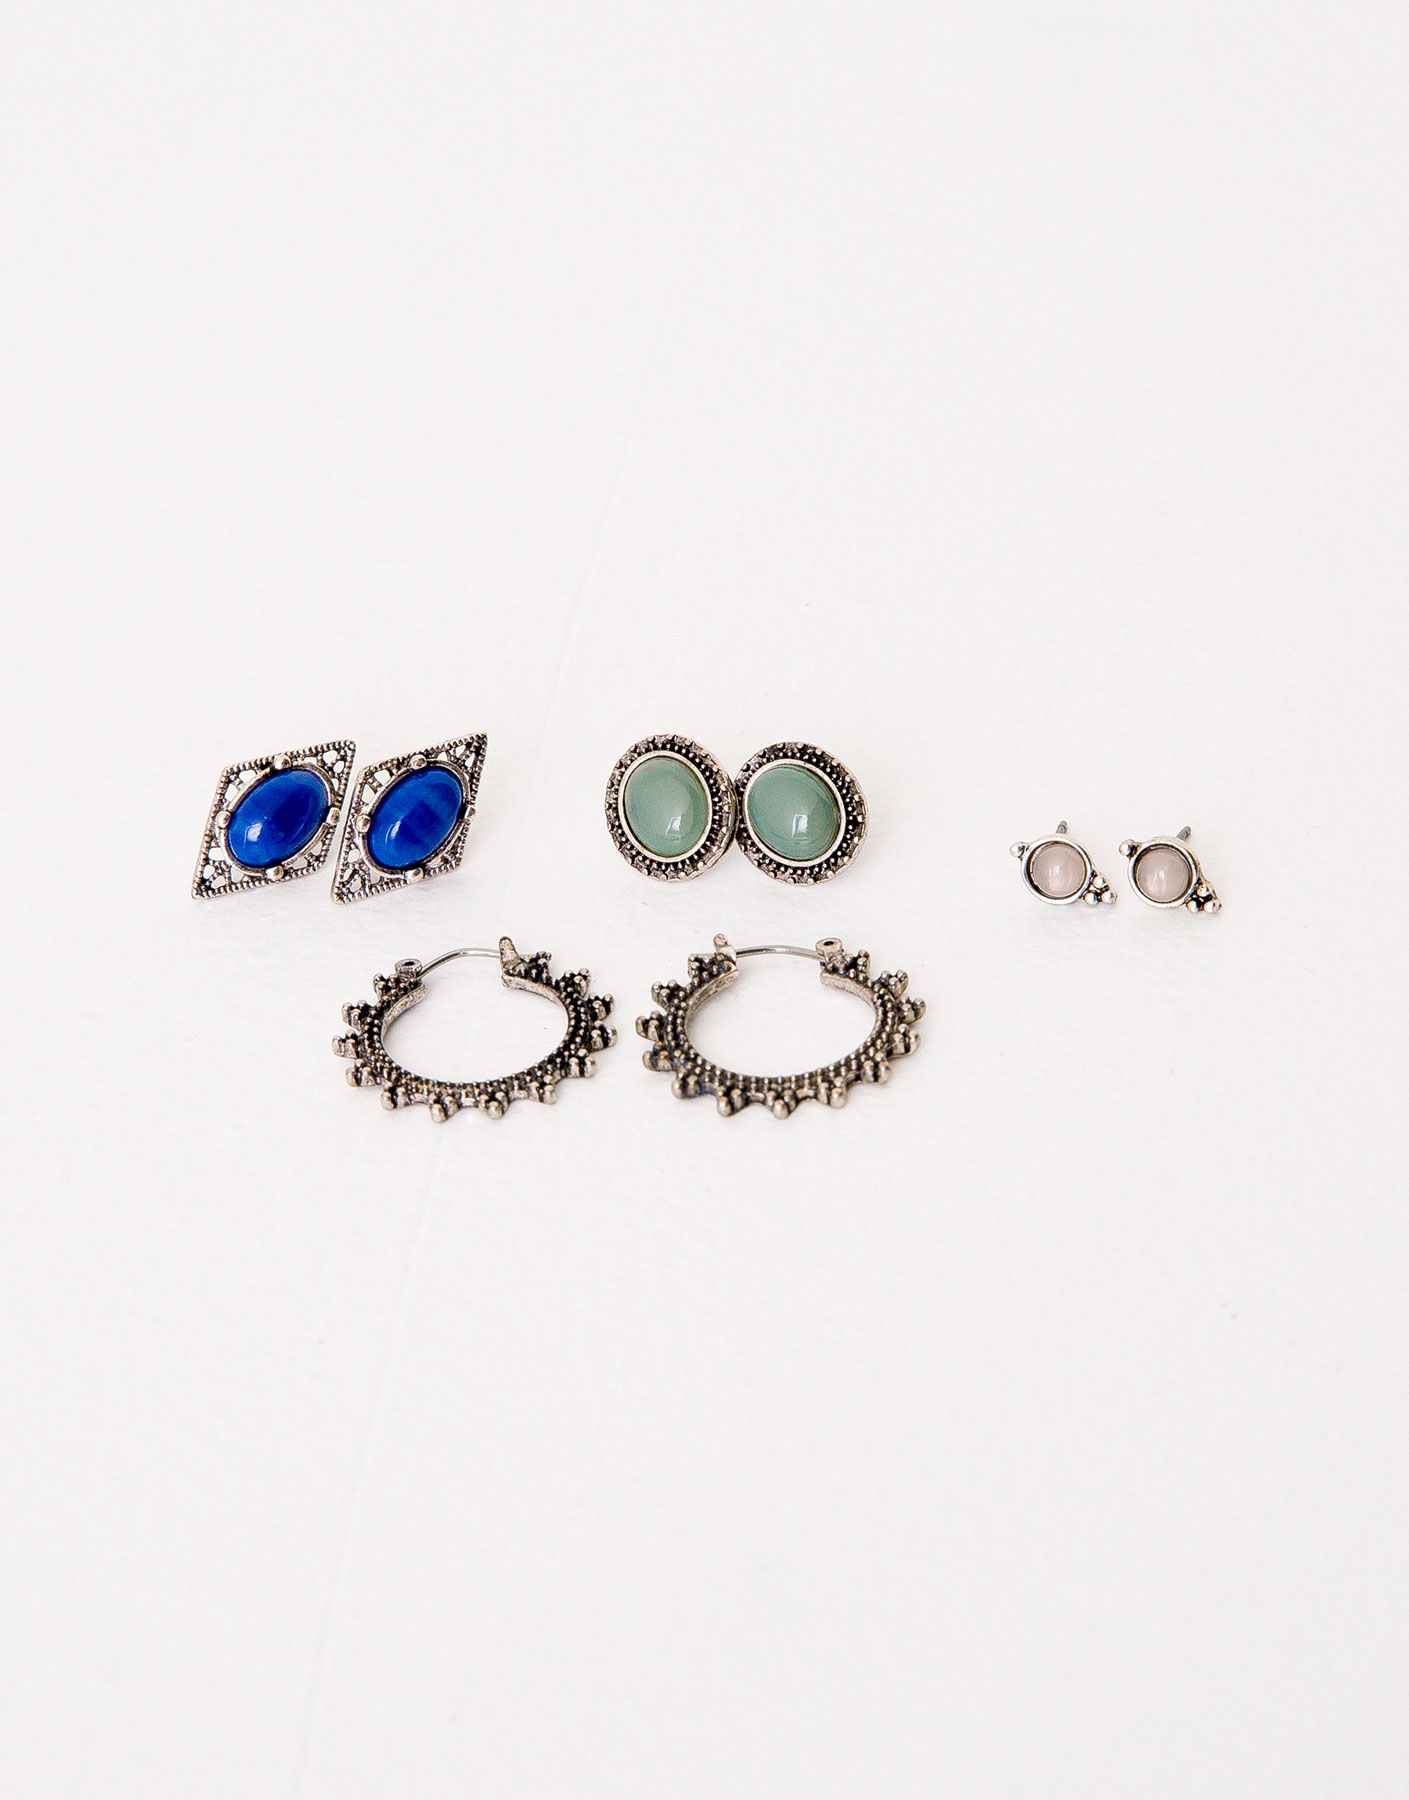 Pack of 4 assorted earrings